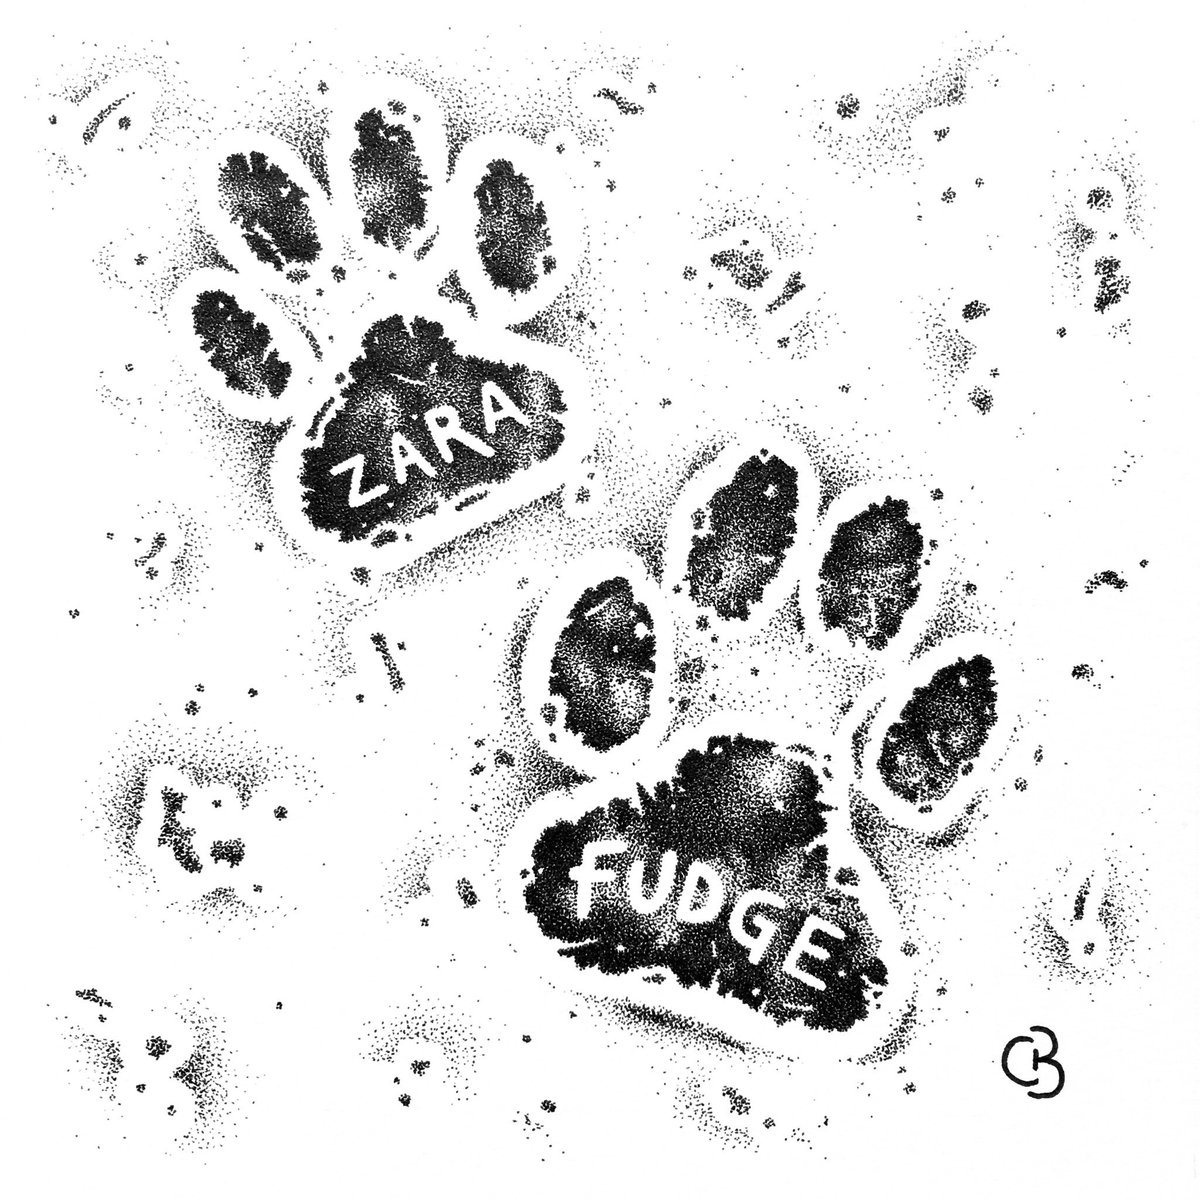 Another #personalised product with these #handdrawn #pawprints  a whole lot of dots in this one...!   #dog #labrador #giftideas #creativegifts #personal #penandink #blackandwhite #madetoorder #oneofakind #art #design #fineart #unique  #highstridesoc #localartist #birminghampic.twitter.com/ueQTA2063Y